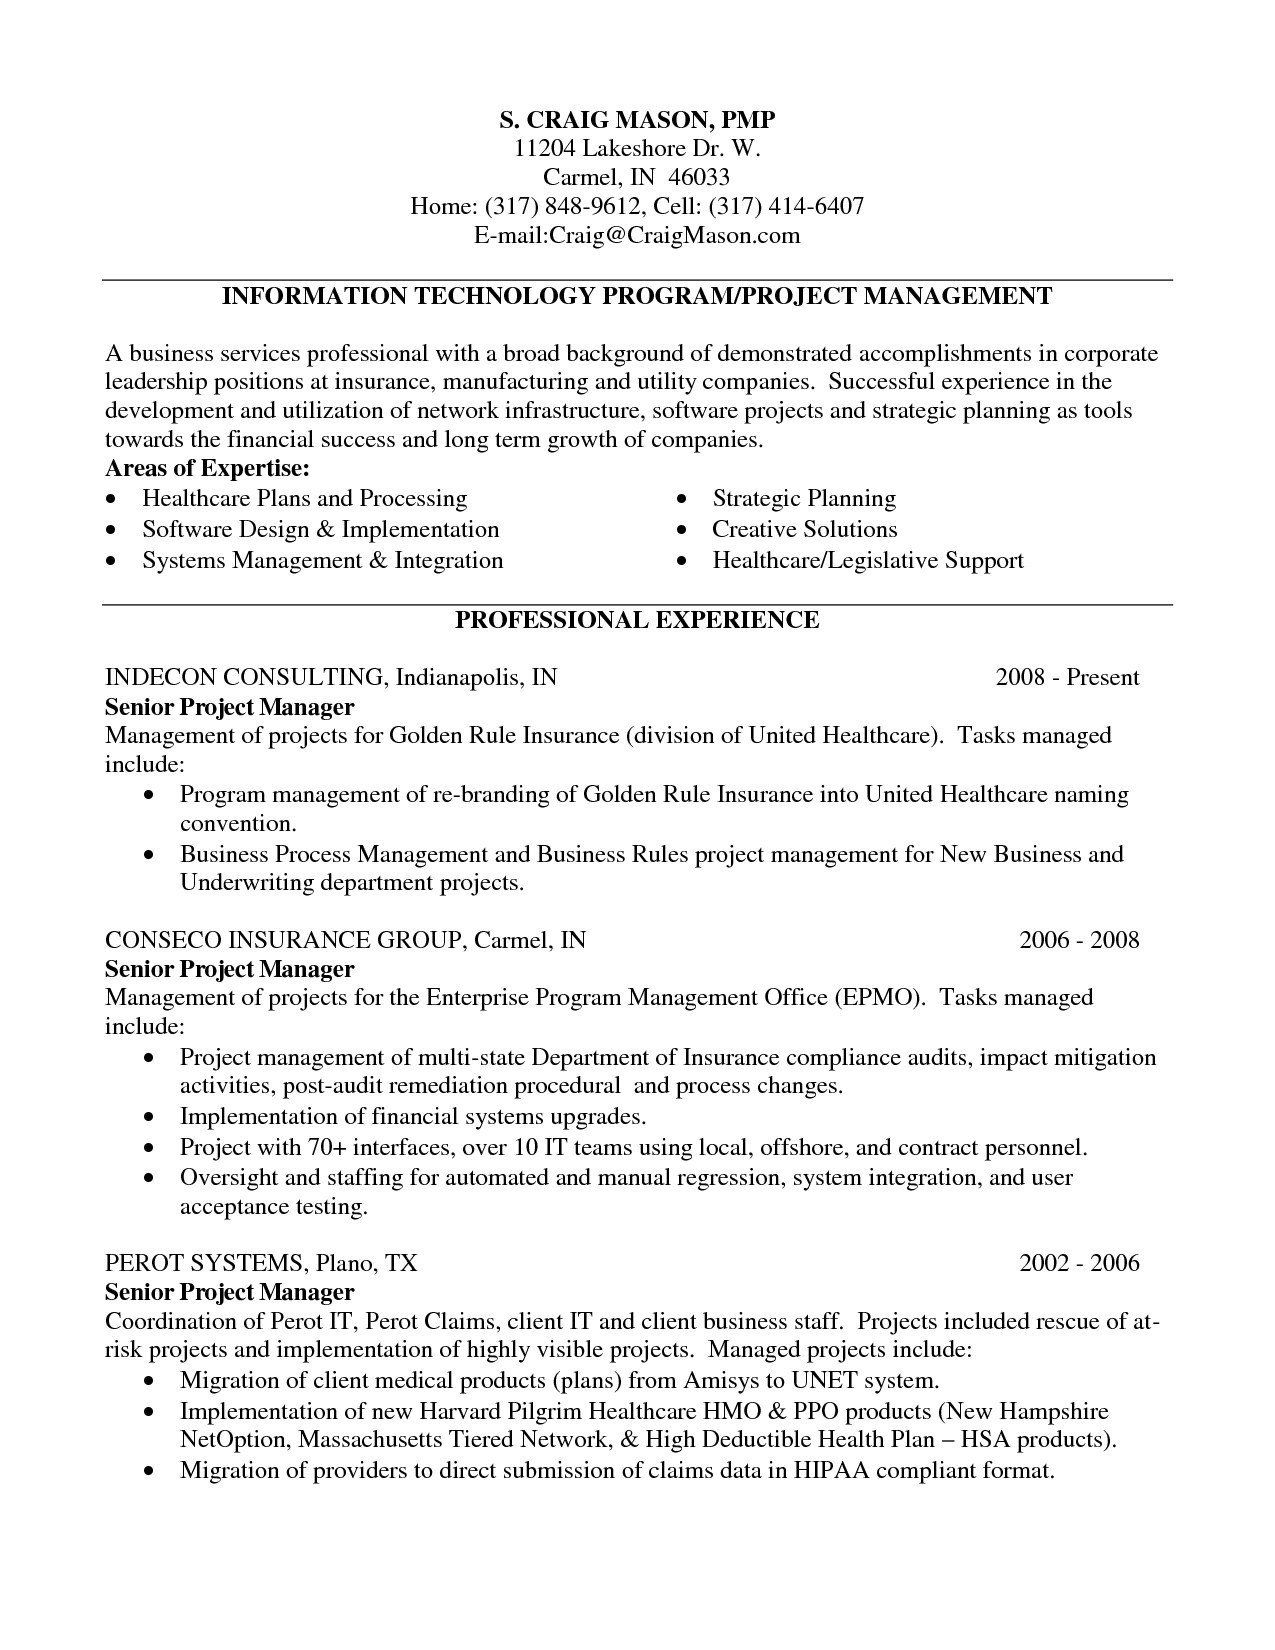 Technical Project Manager Resume Unique Resume Sample Technical Account Manager Best Collection Project Manager Resume Manager Resume Resume Examples